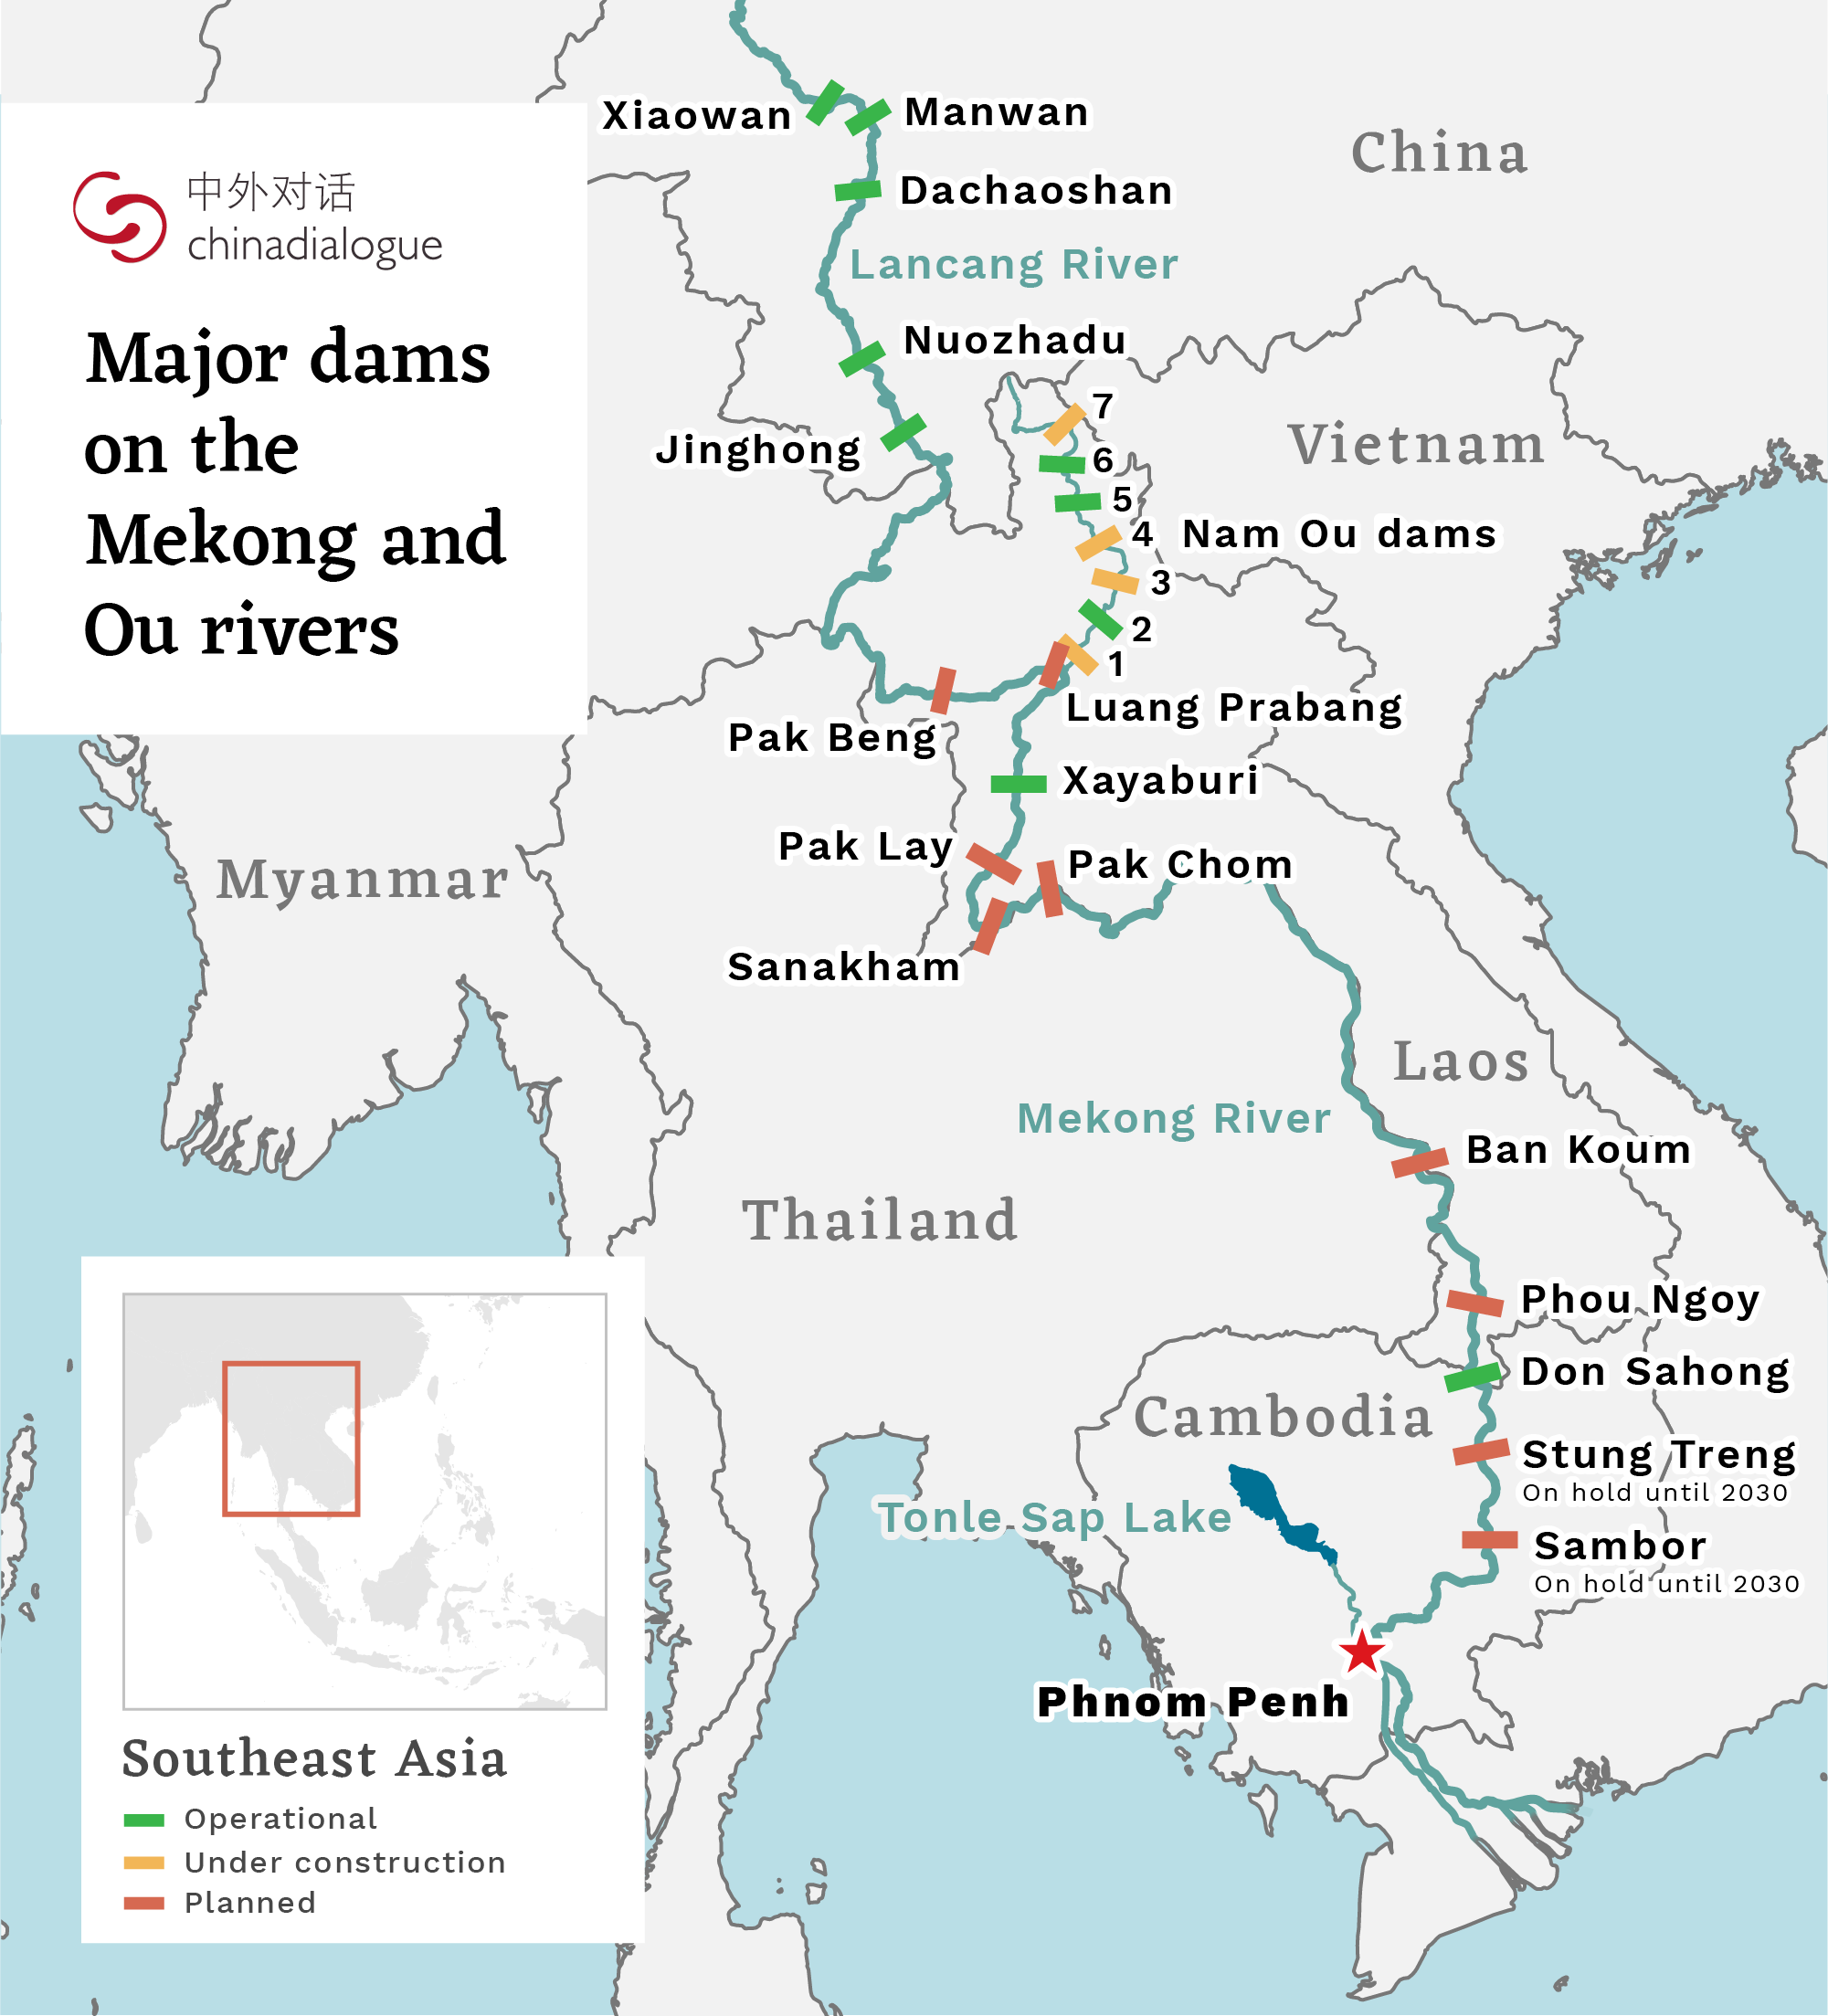 map of major dams on the mekong river and ou river